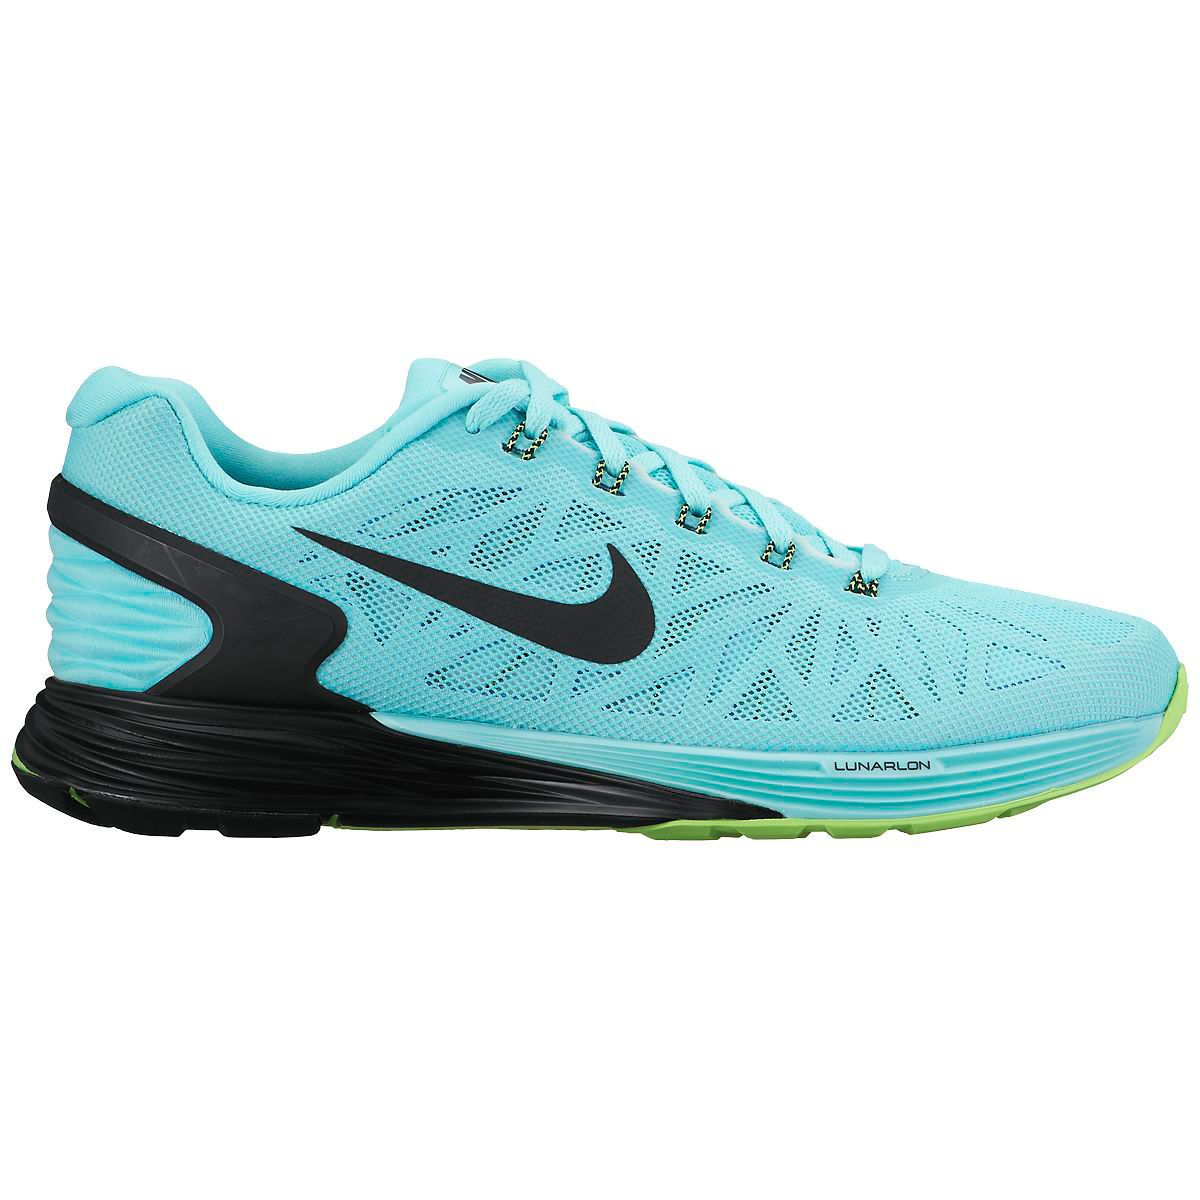 half off fe400 5c2aa Wiggle  Nike Womens Lunarglide 6 Shoes - SU15  Stability Running Shoes